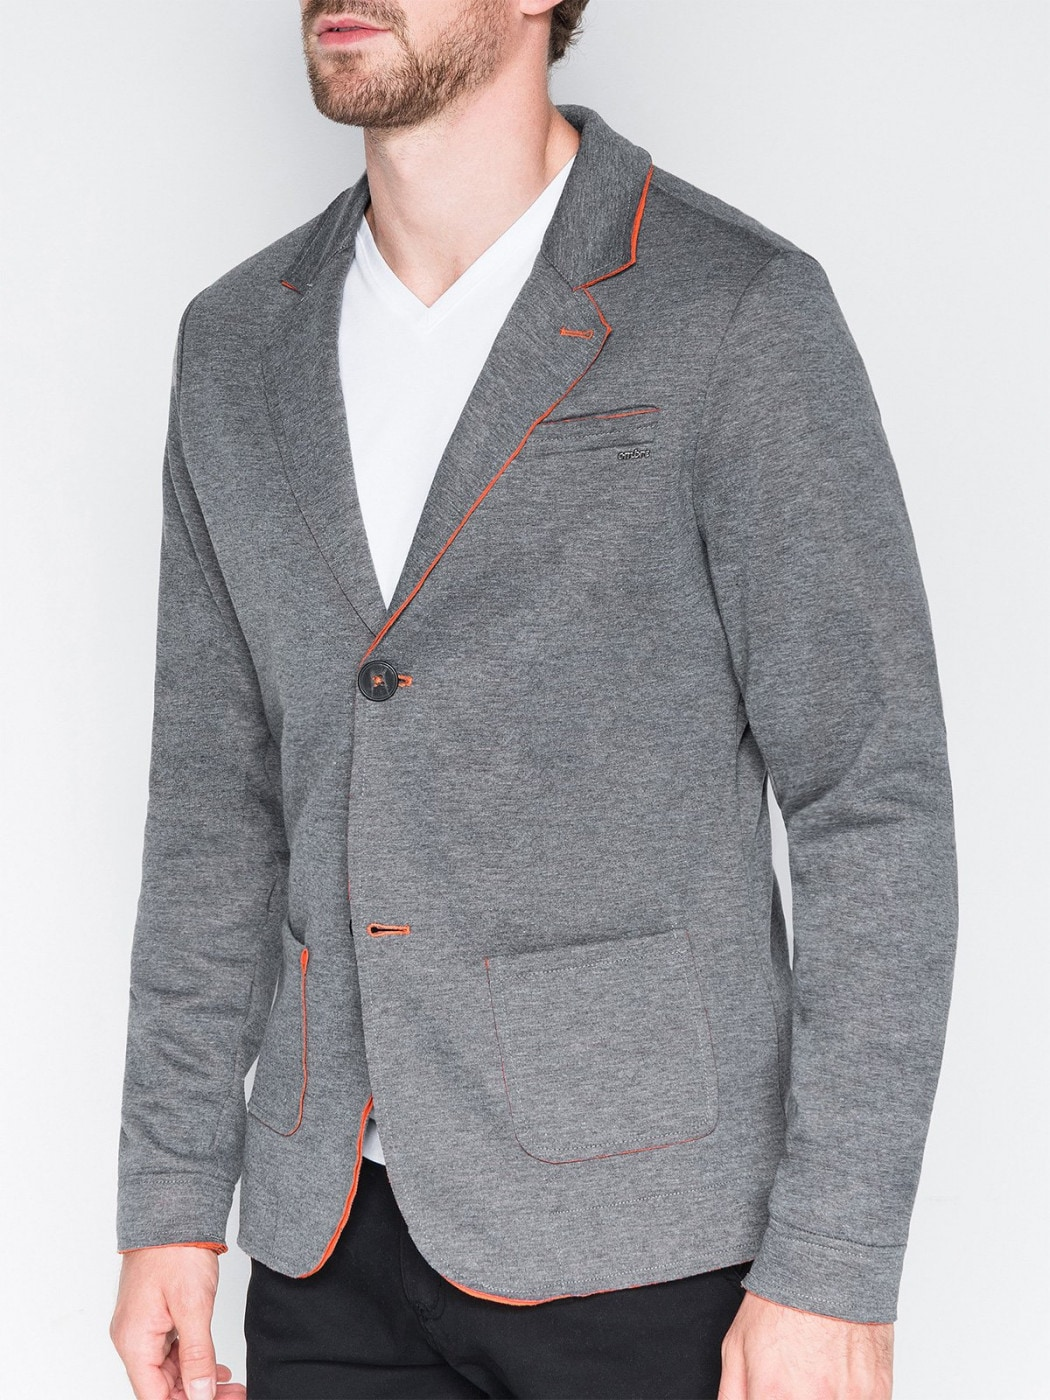 Ombre Clothing MEN'S CASUAL BLAZER JACKET M90